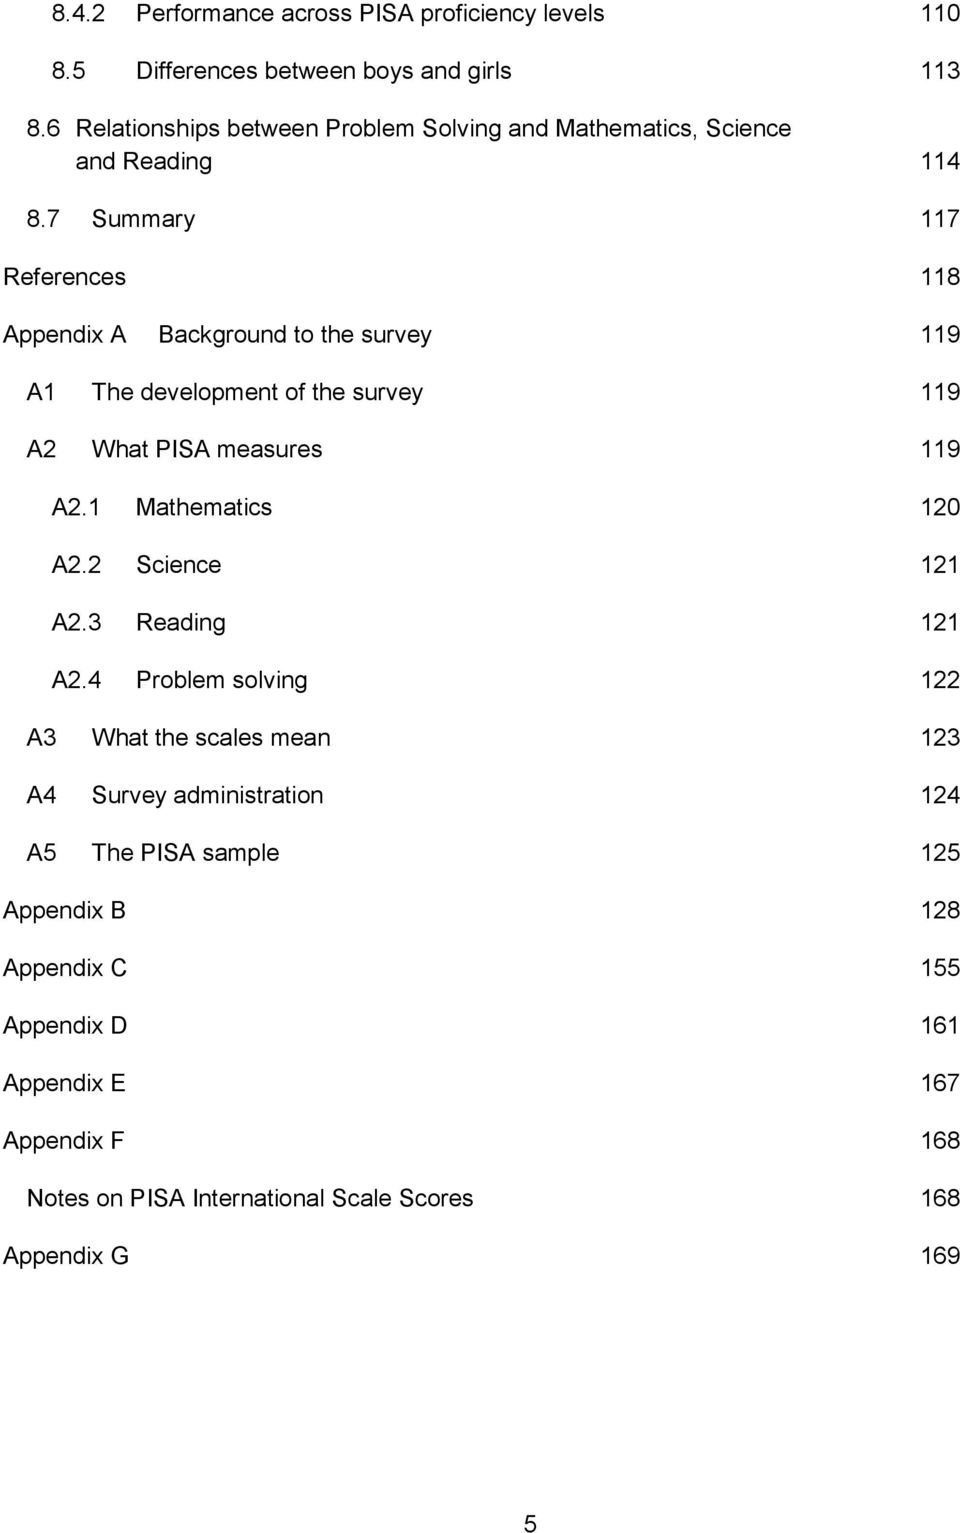 7 Summary 117 References 118 Appendix A Background to the survey 119 A1 The development of the survey 119 A2 What PISA measures 119 A2.